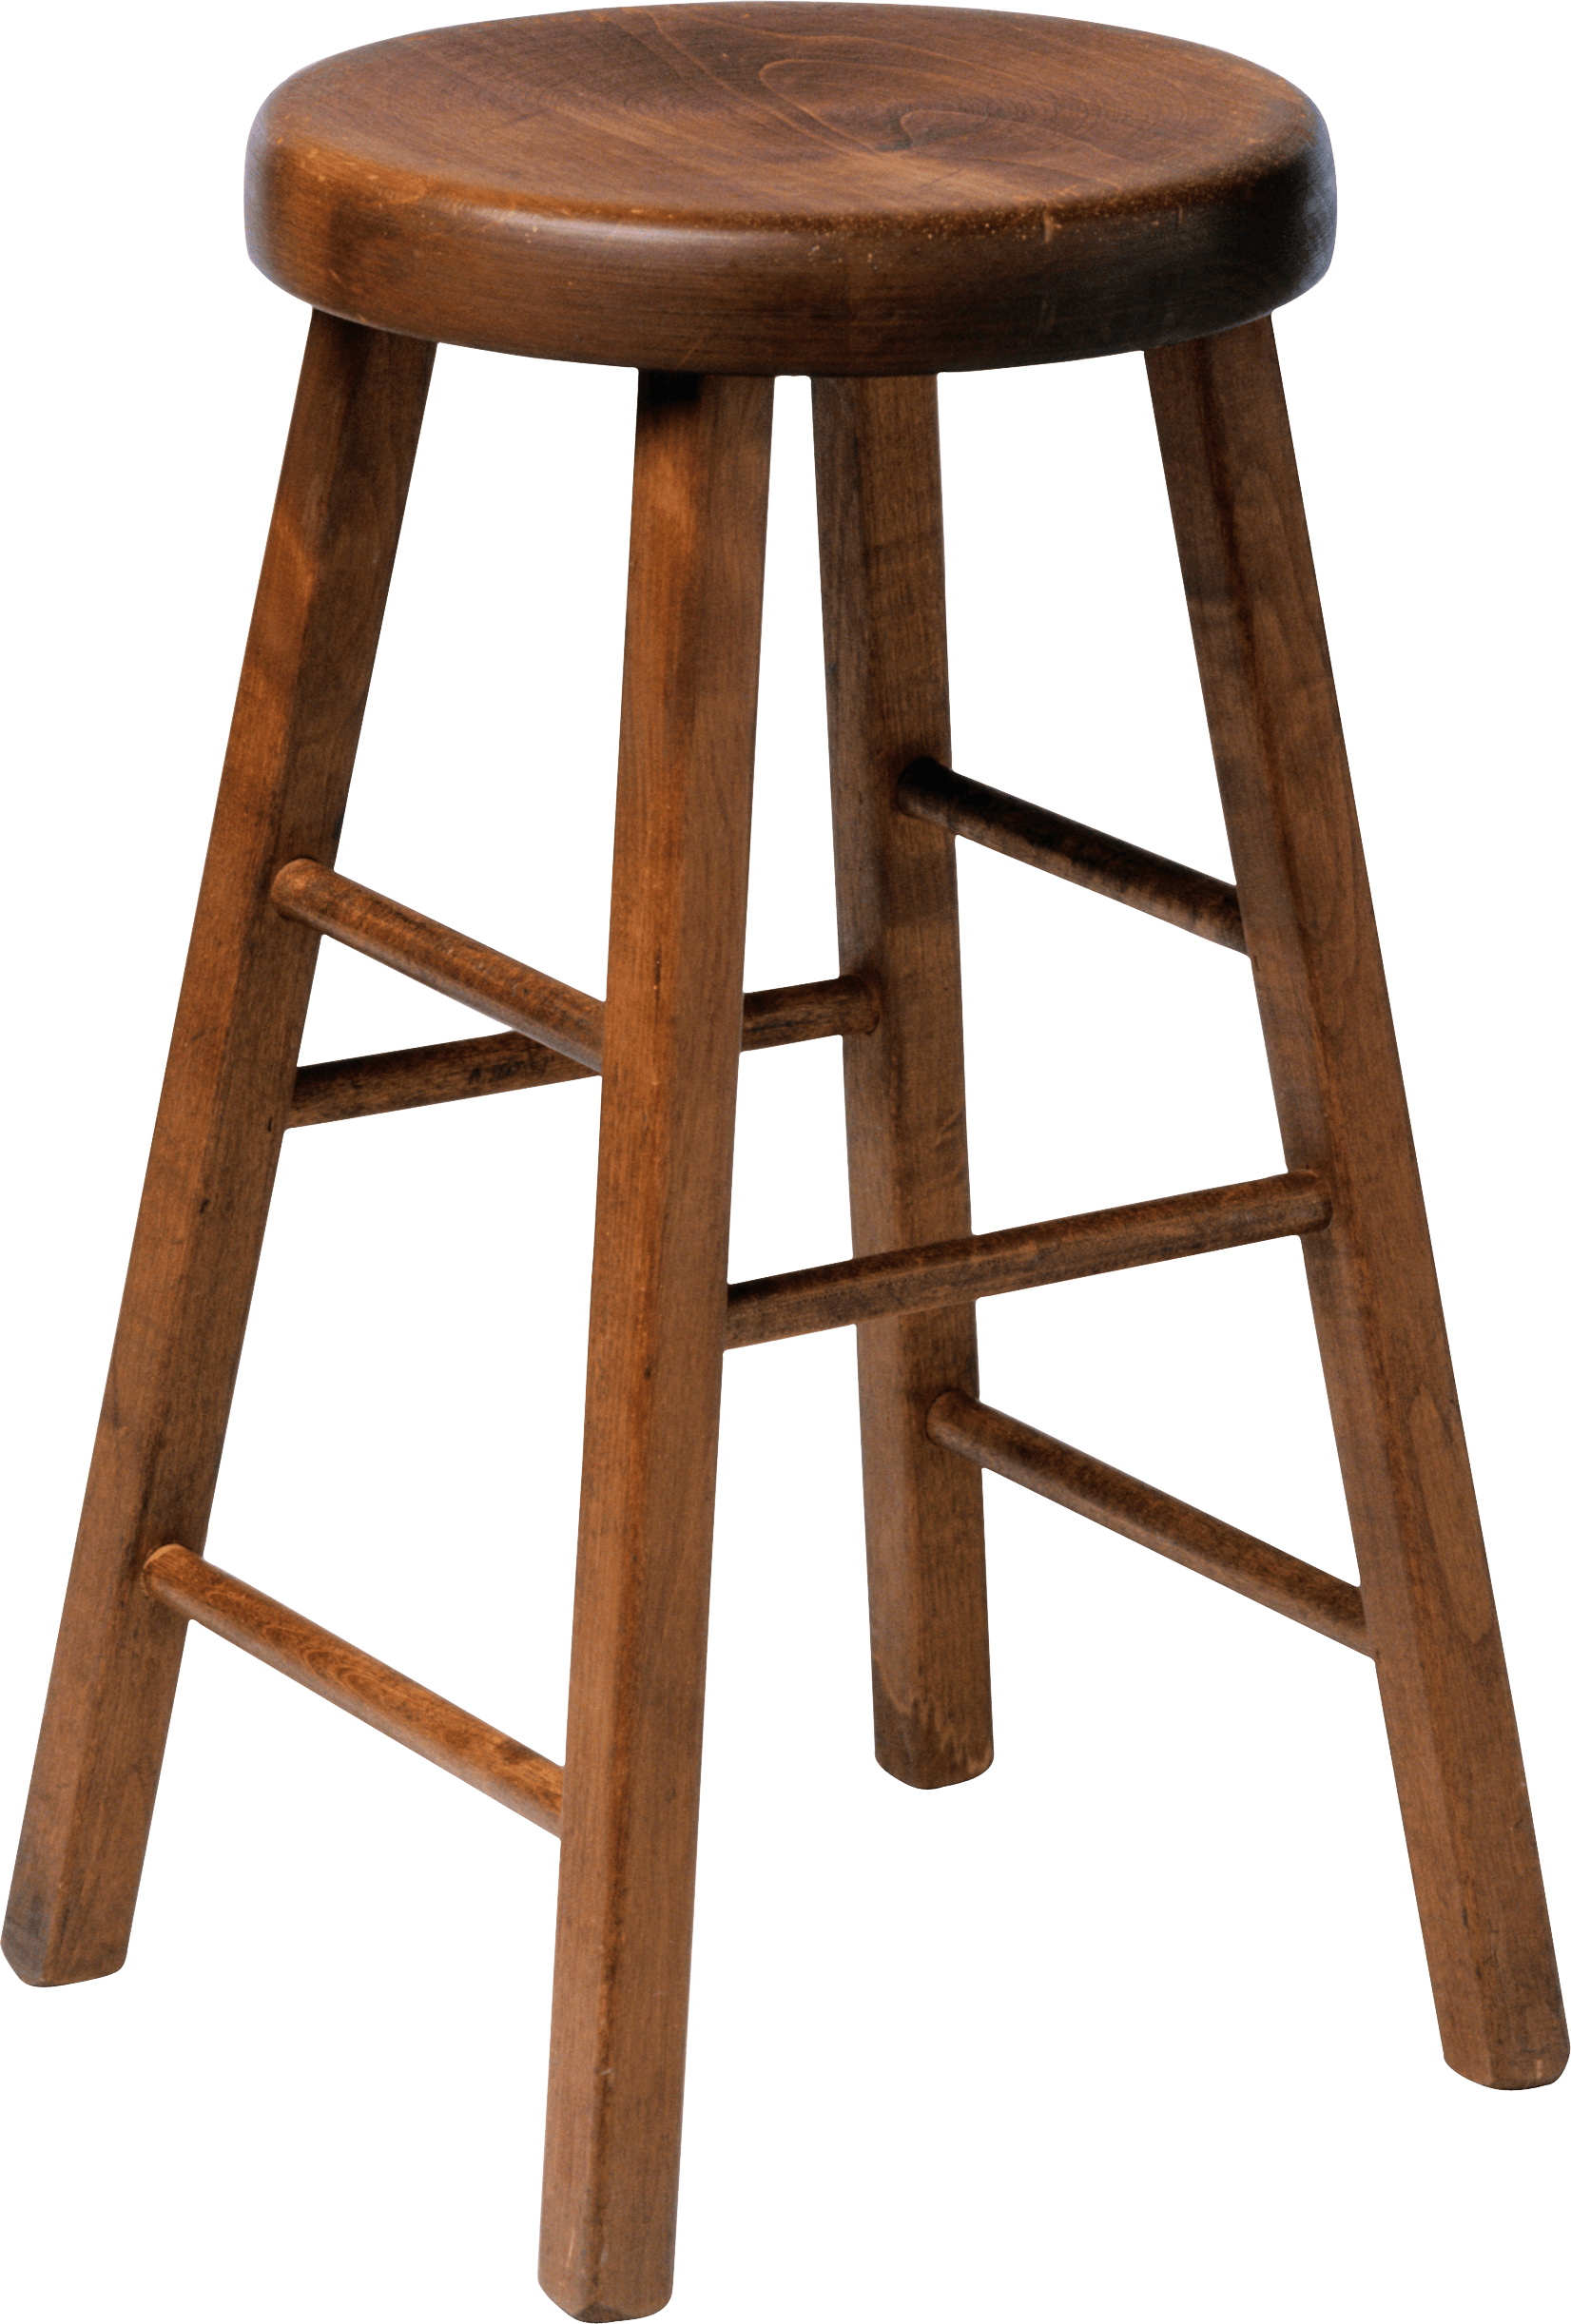 Stool chair transparent png. Furniture clipart wooden furniture